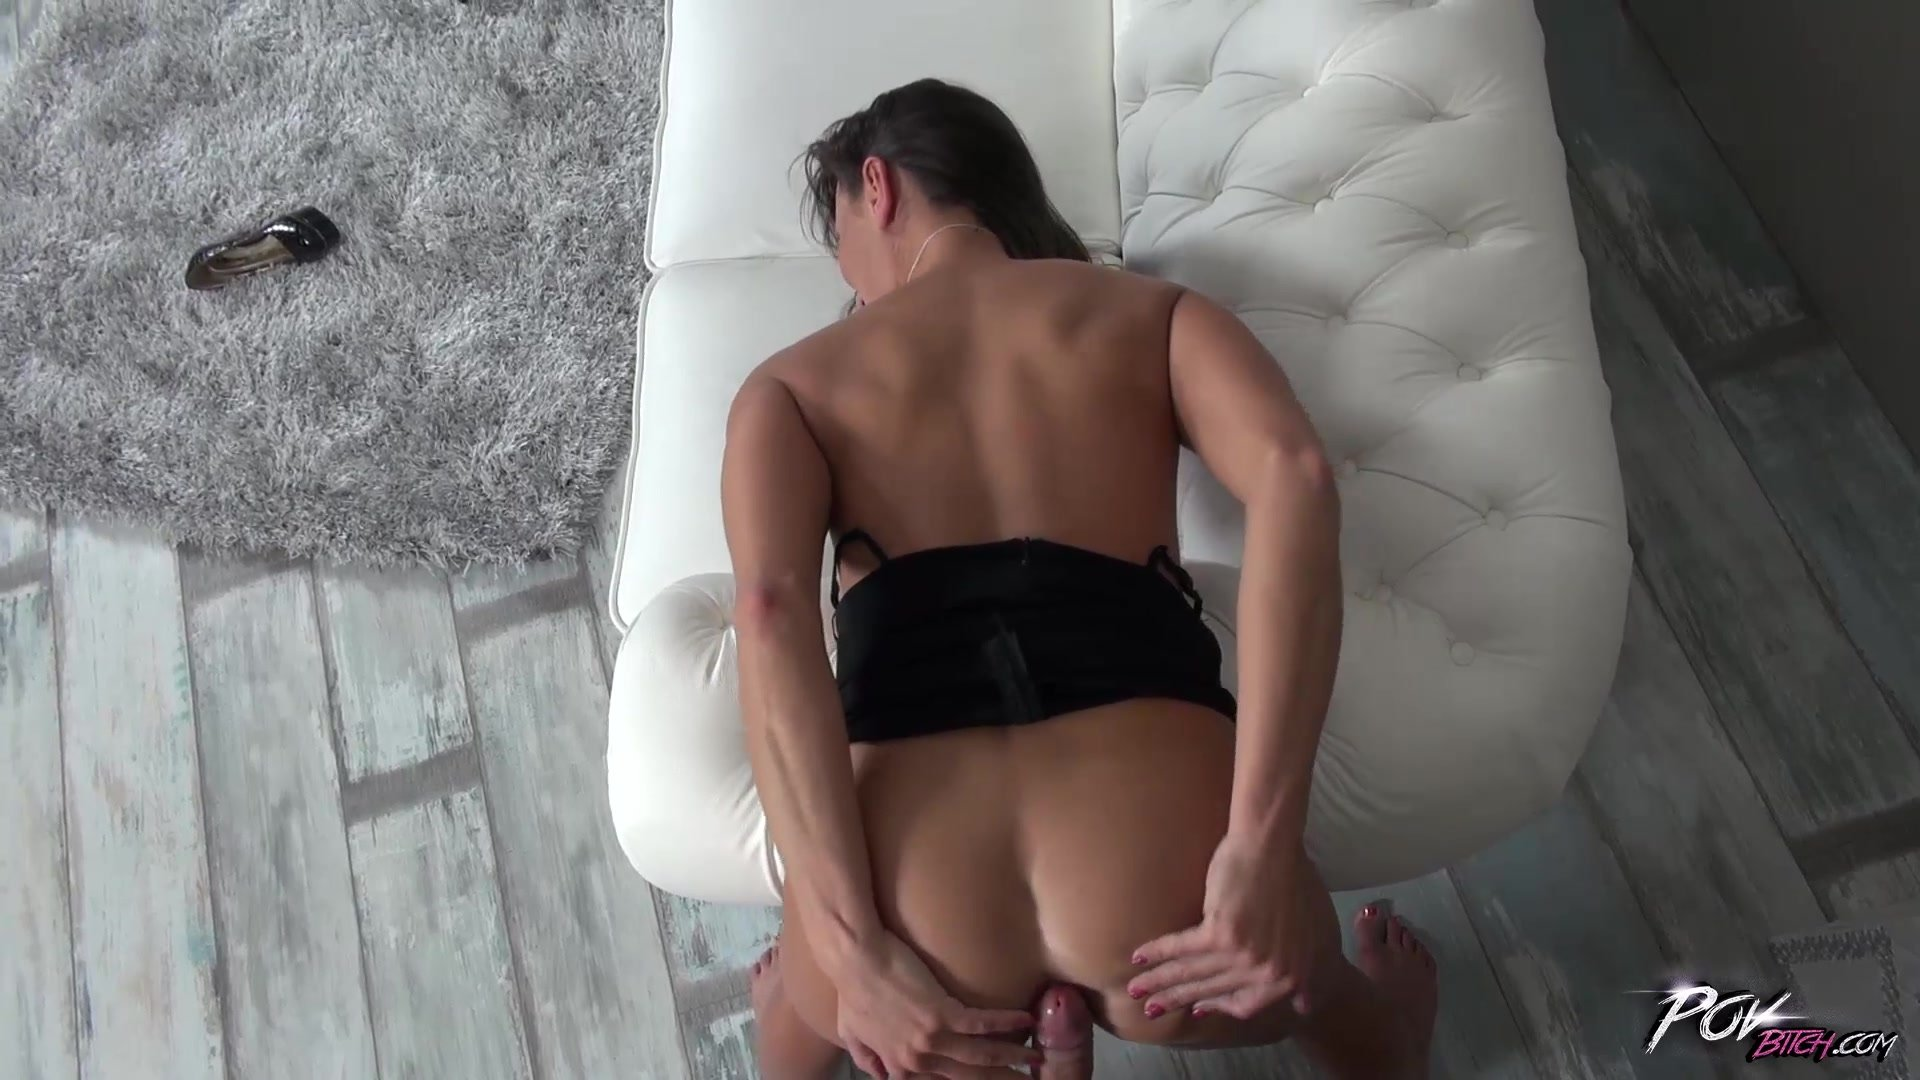 Swinger clubs in ar casting interracial anal